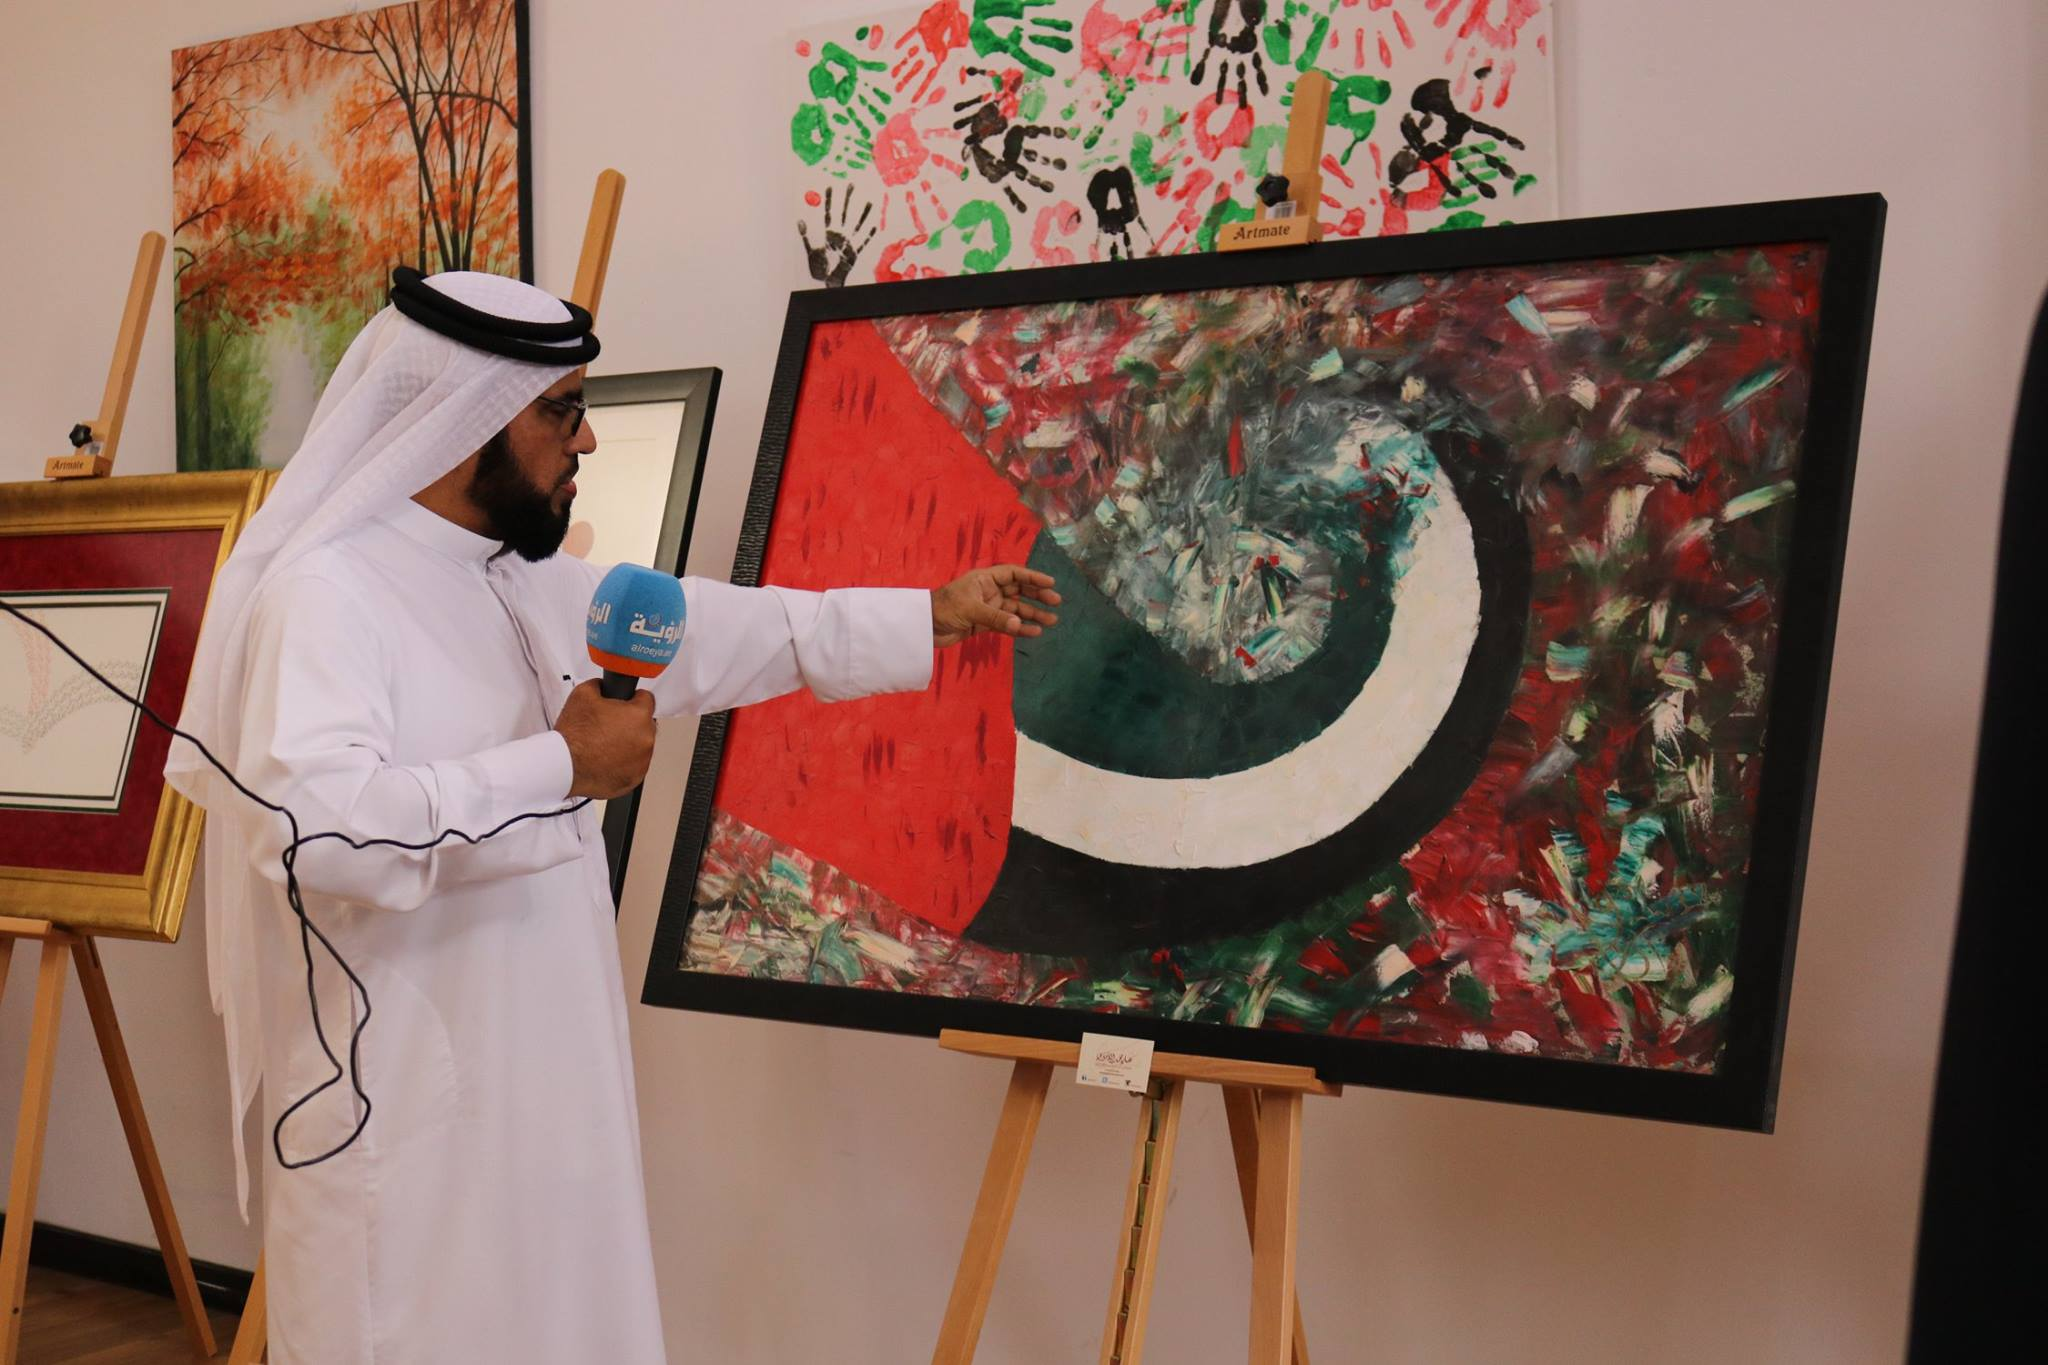 Year of Giving' Art Exhibition